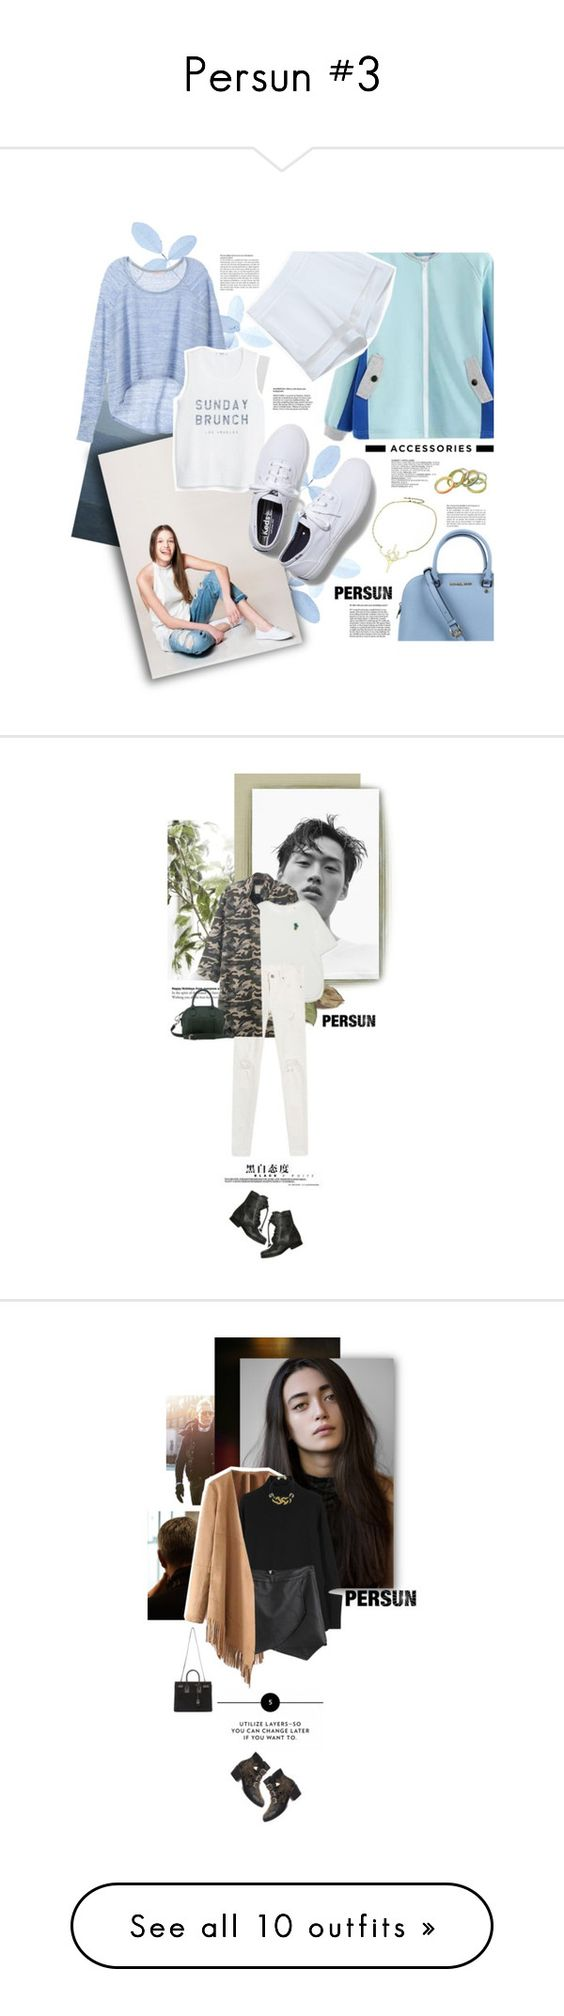 """""""Persun #3"""" by juhh ❤ liked on Polyvore featuring fashionset, persunmall, persun, Juliajulian, Michael Kors, Victoria's Secret, MANGO, Keds, Edition and J.A.K."""